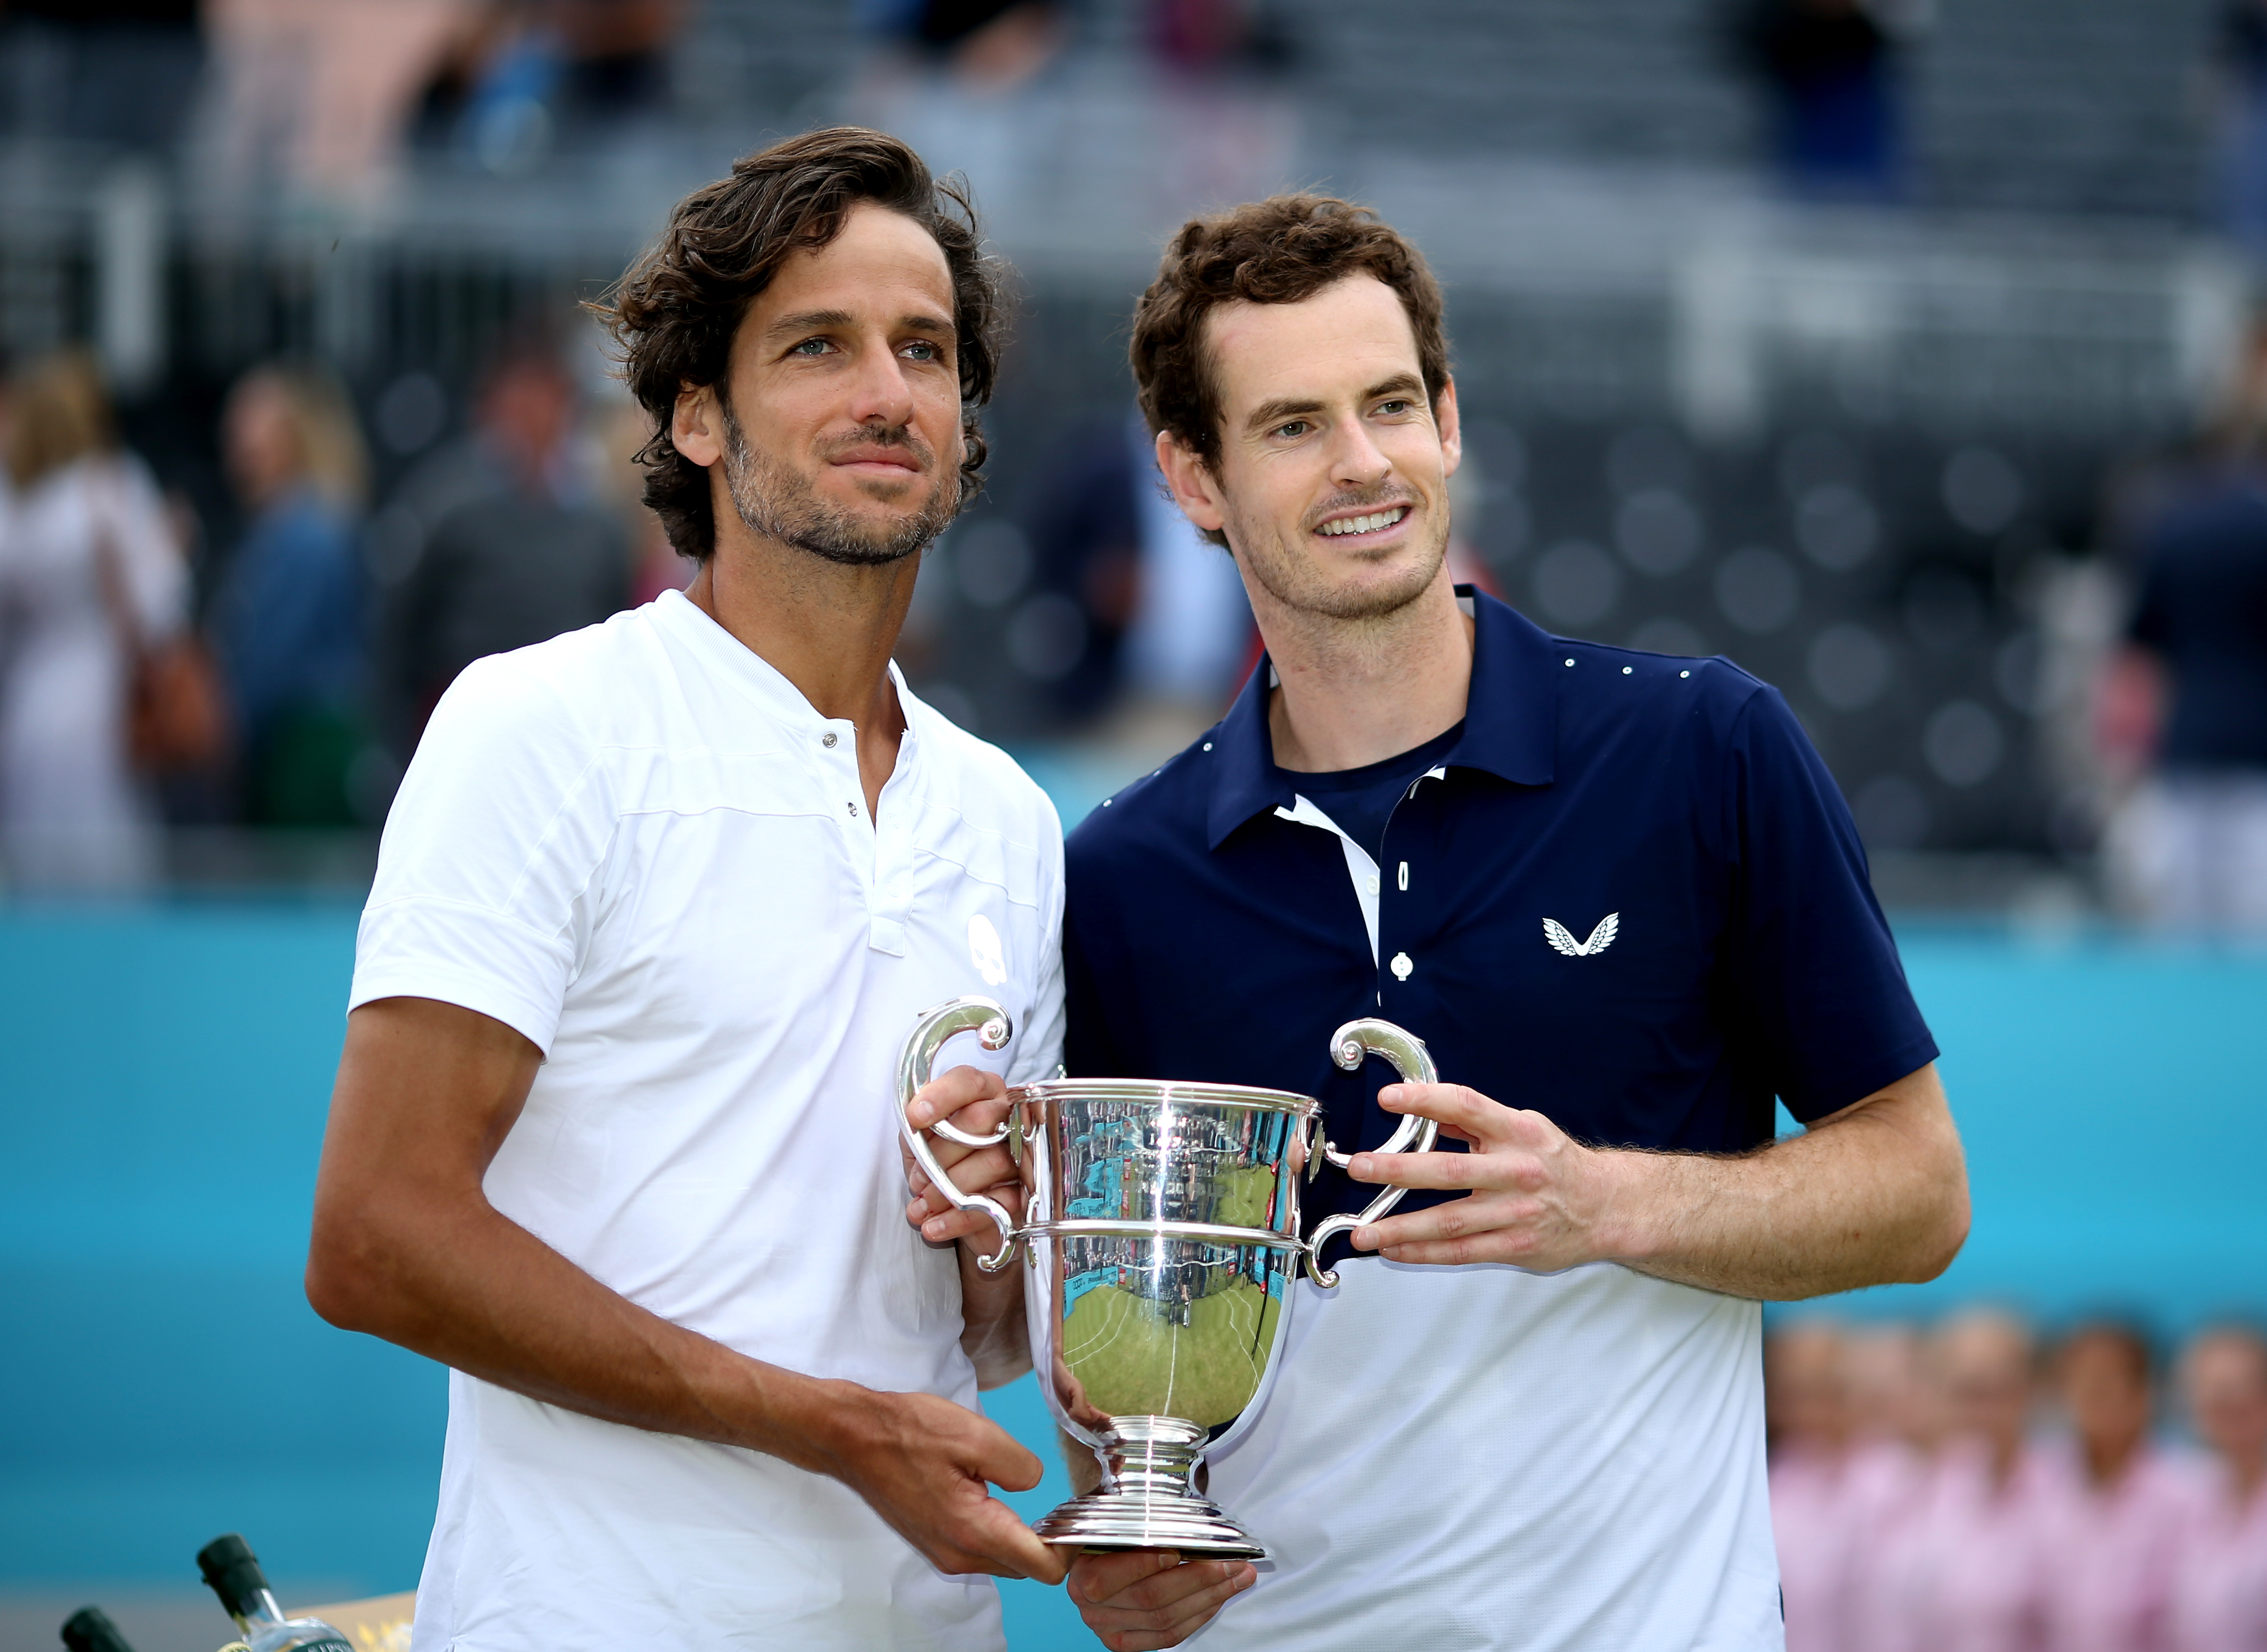 Murray and partner Feliciano Lopez won the doubles at Queen's. Image: PA Images